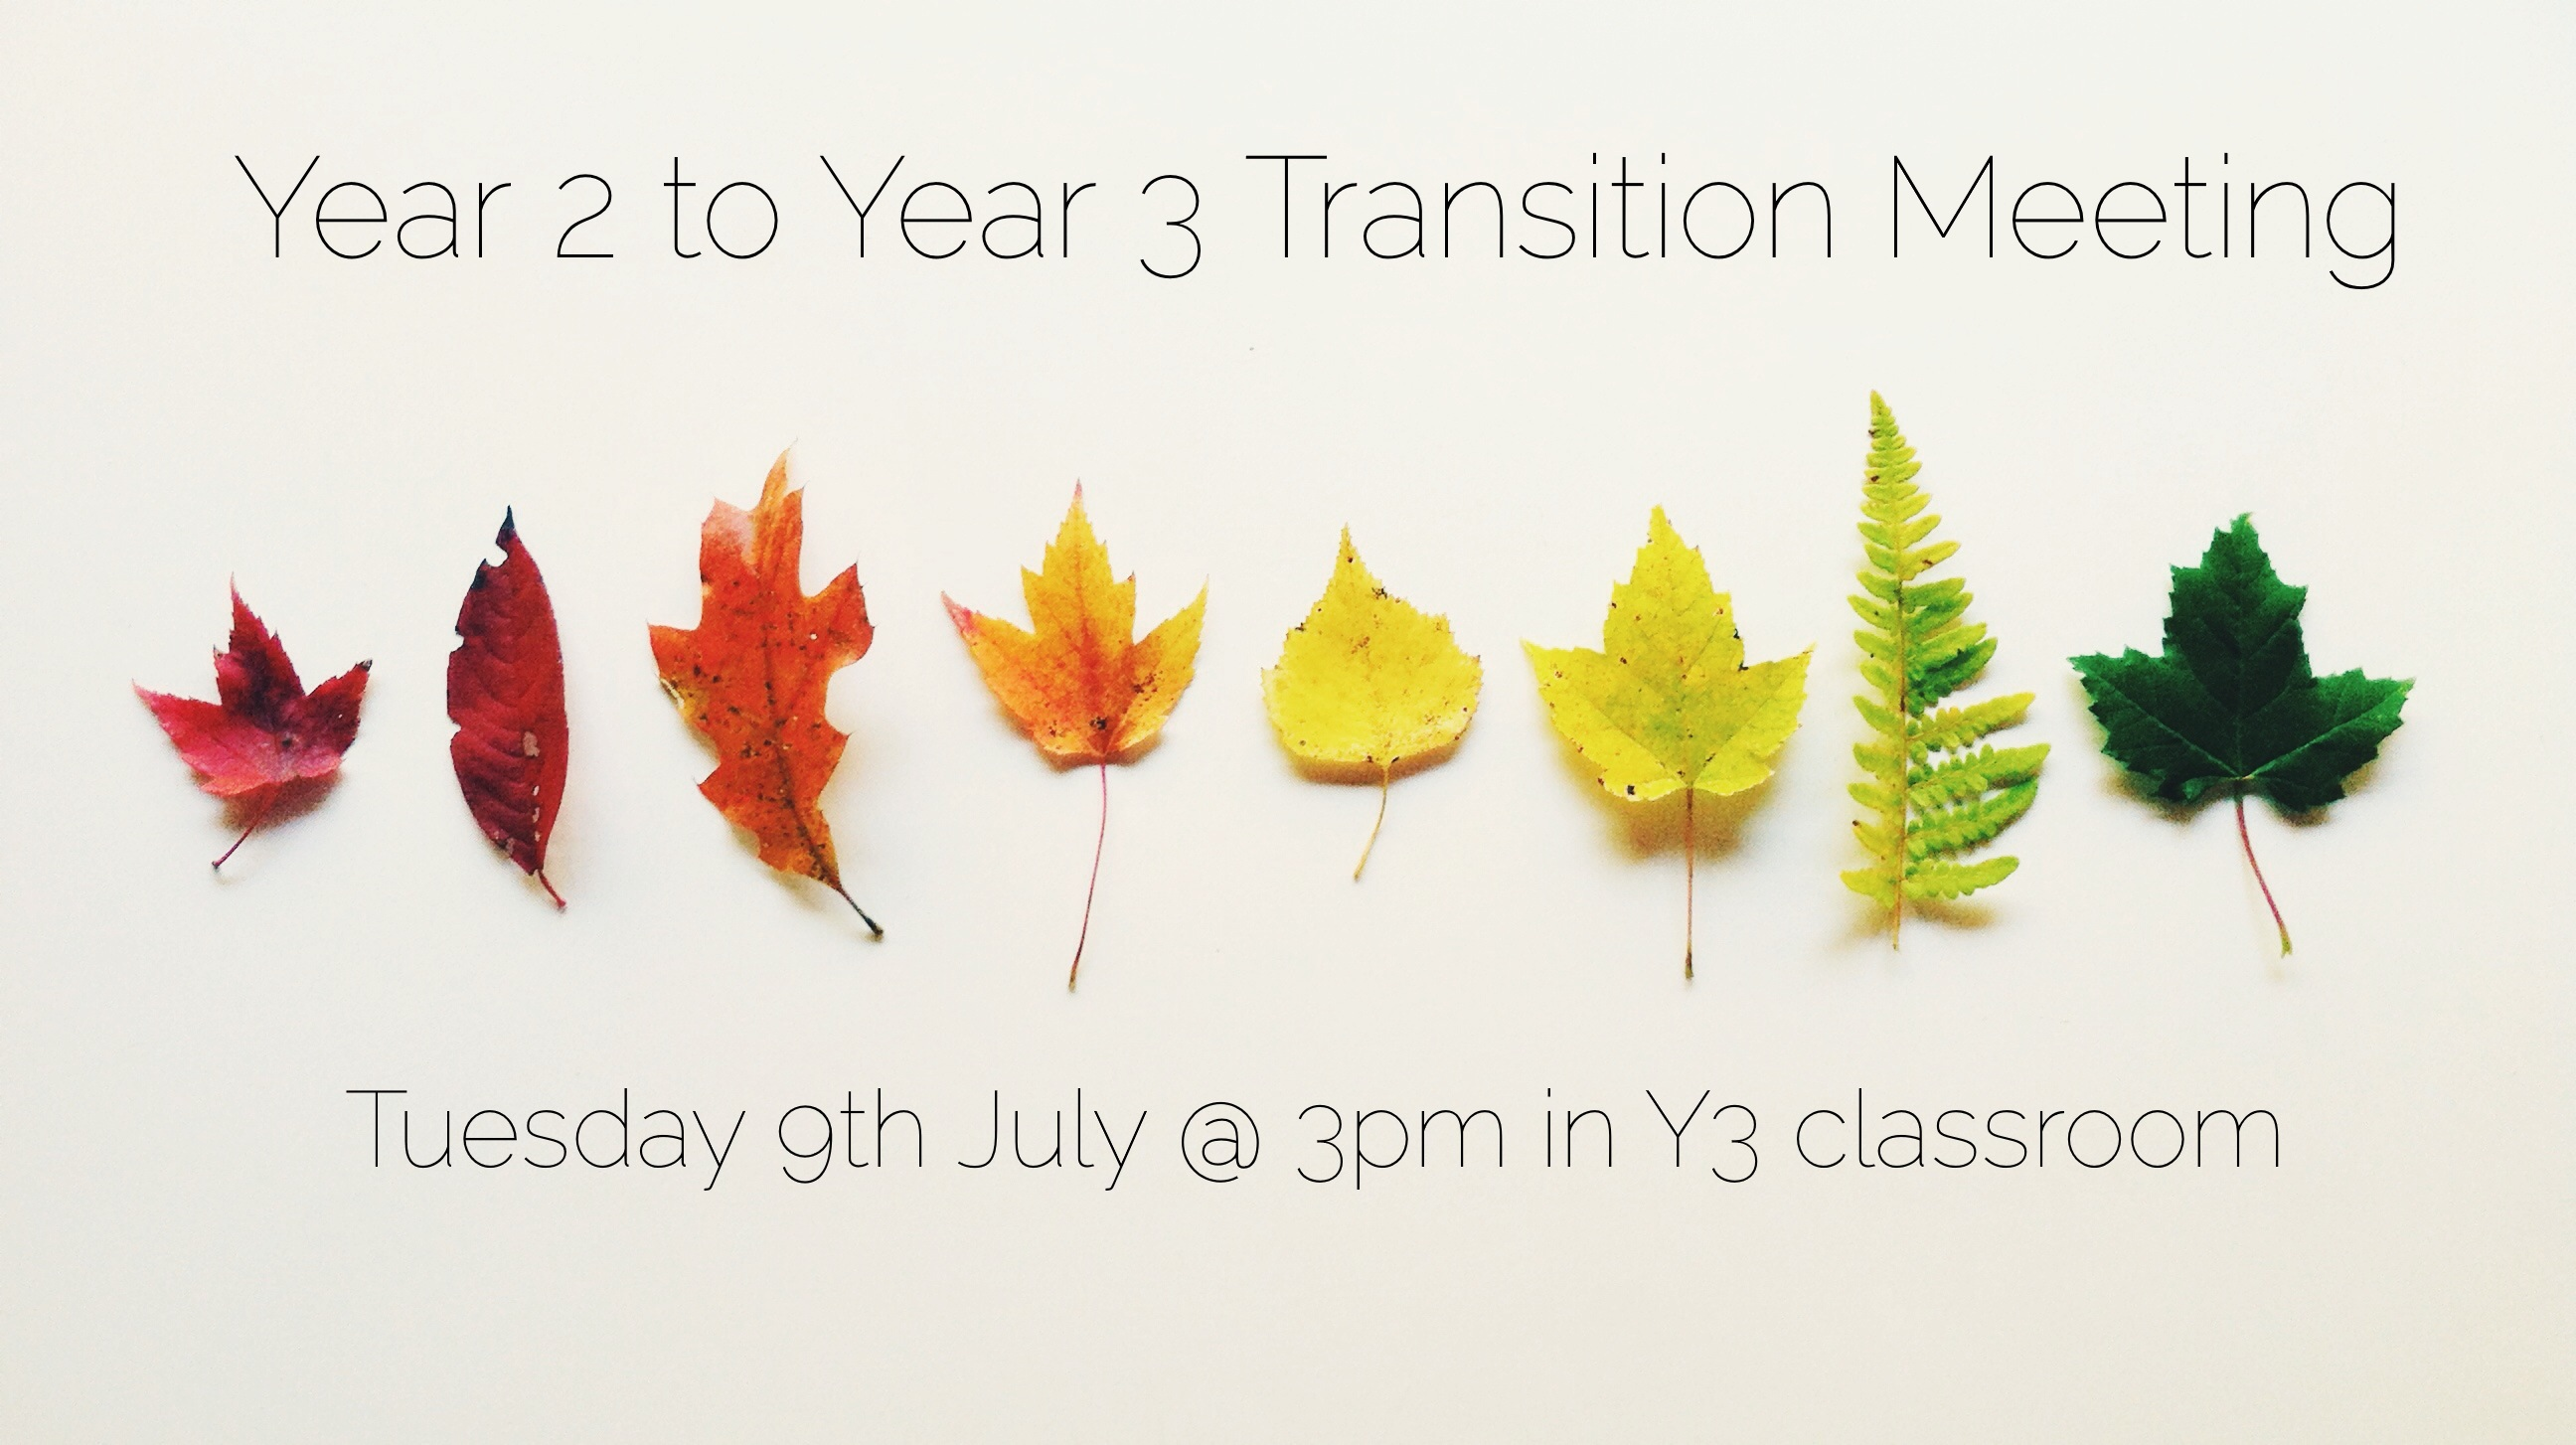 Year 2 to Year 3 Transition Meeting